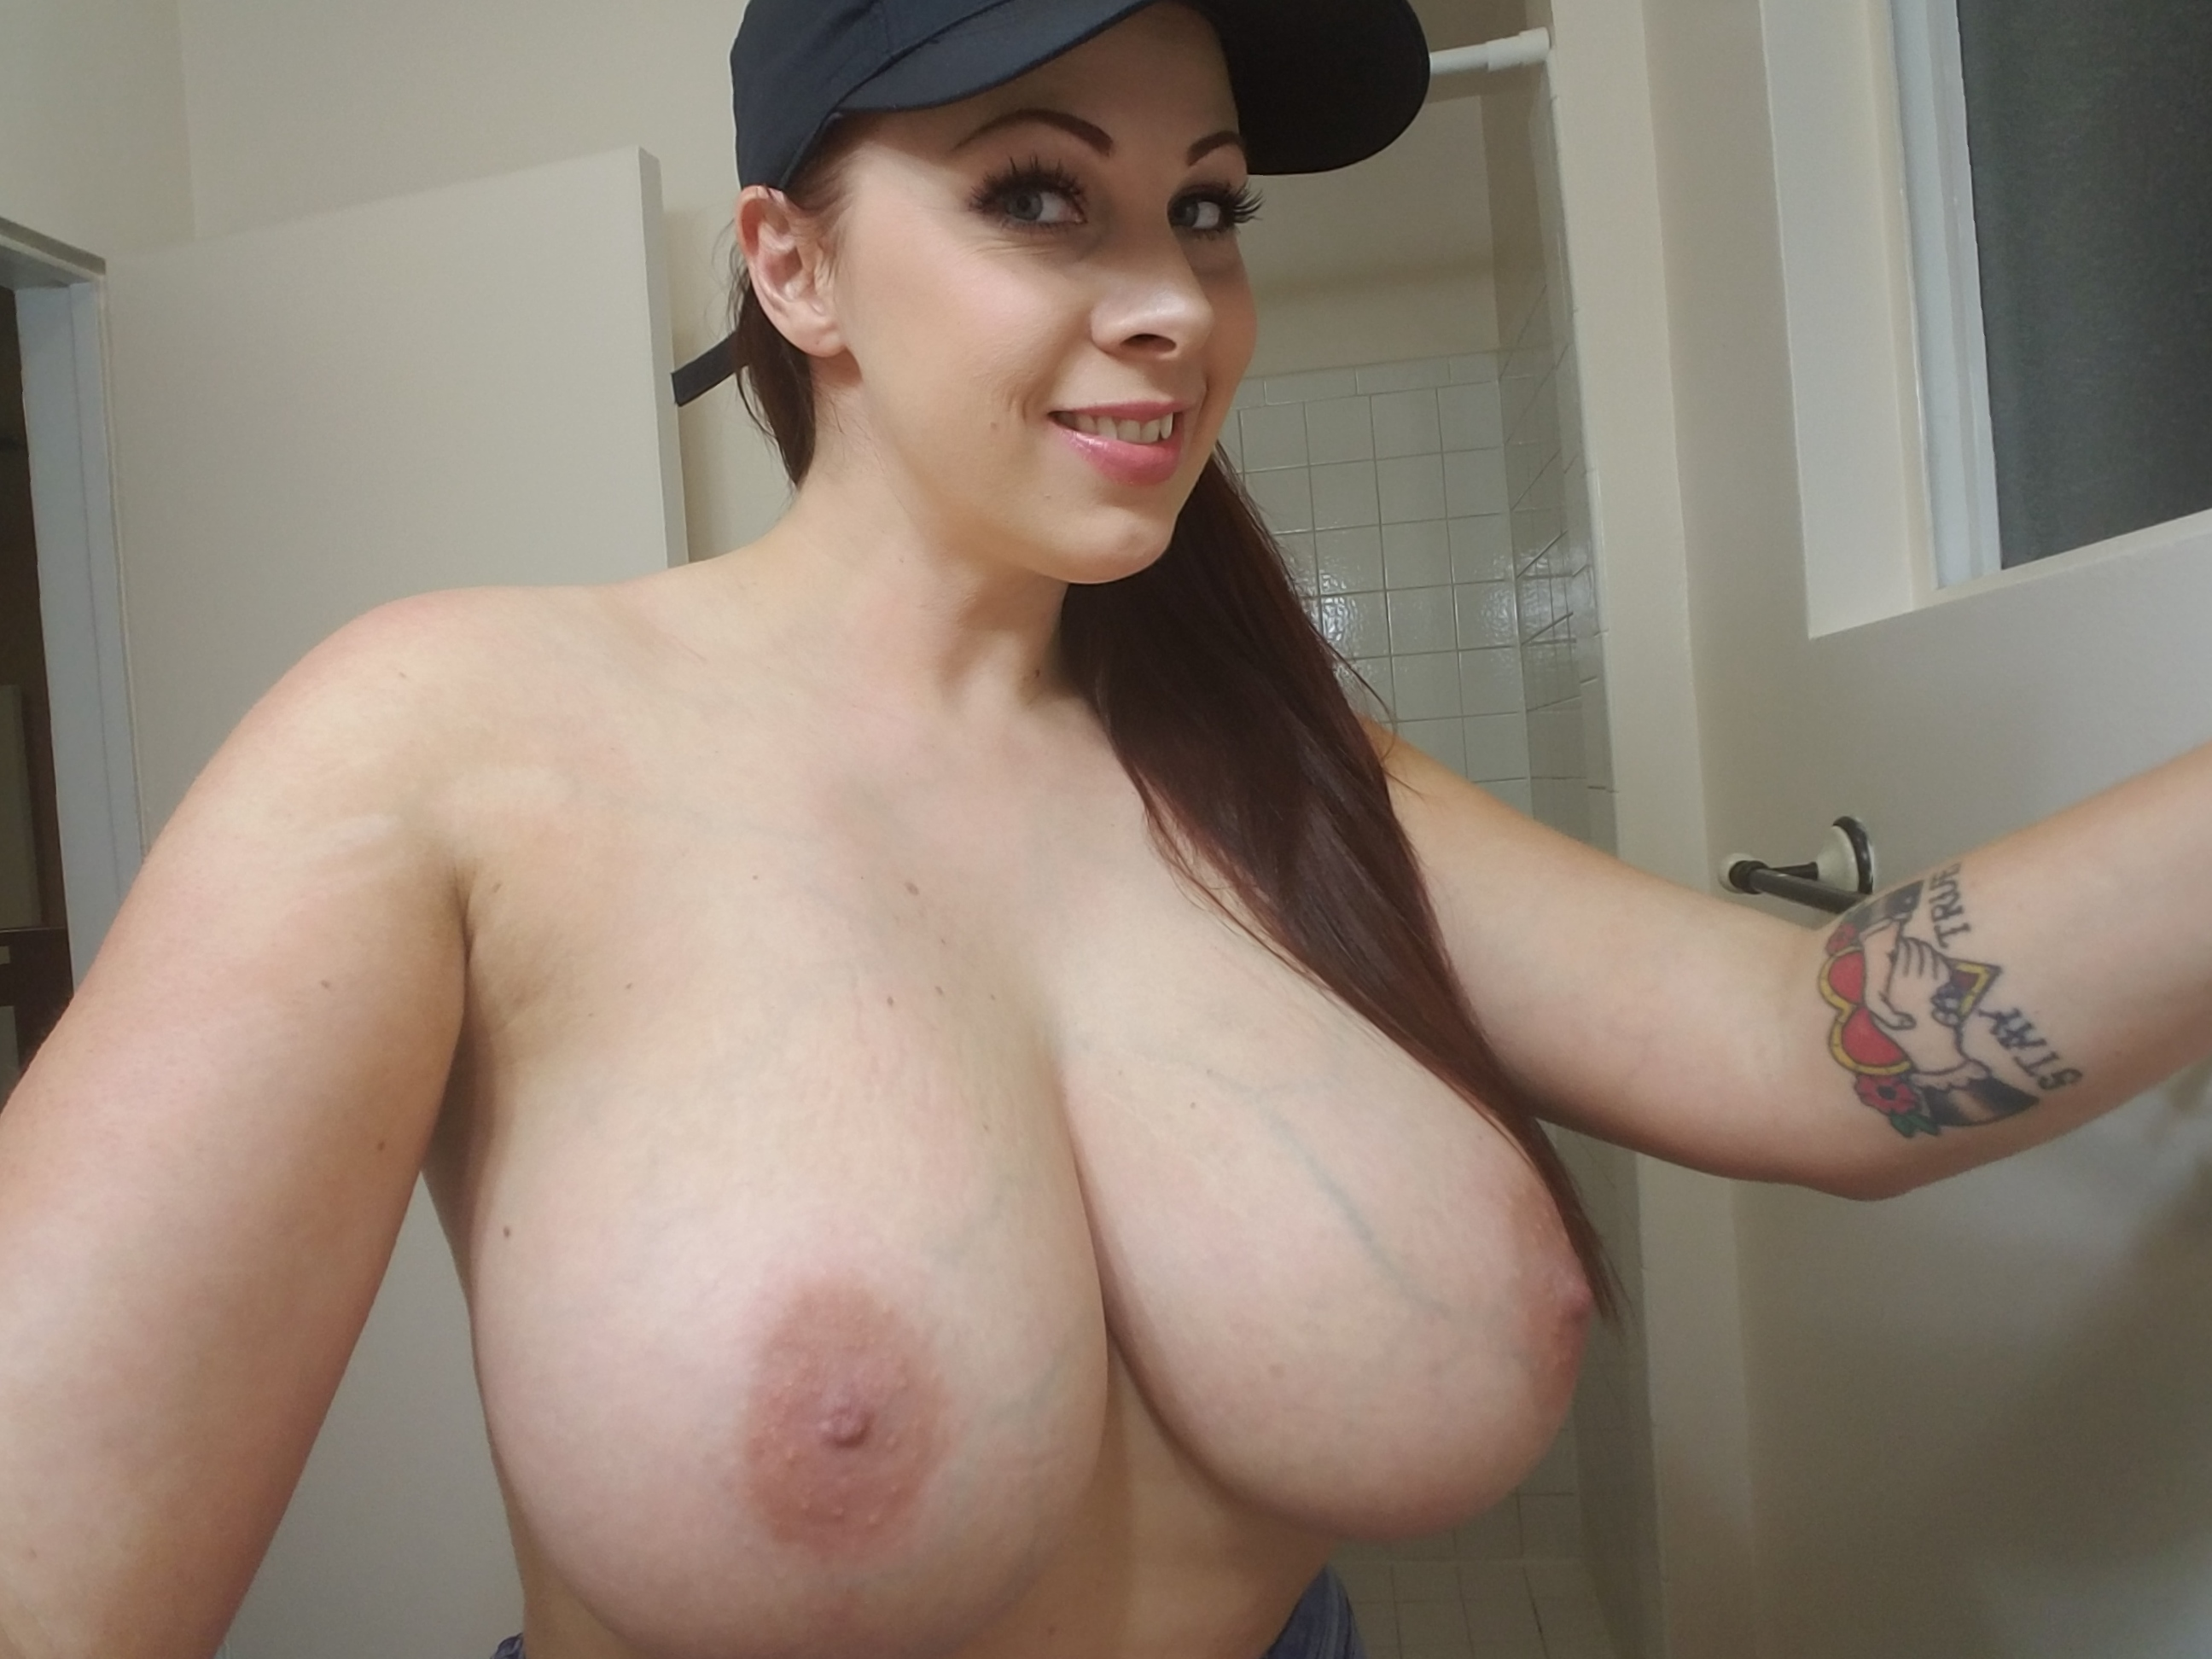 Gianna michaels hardcore fuck 1